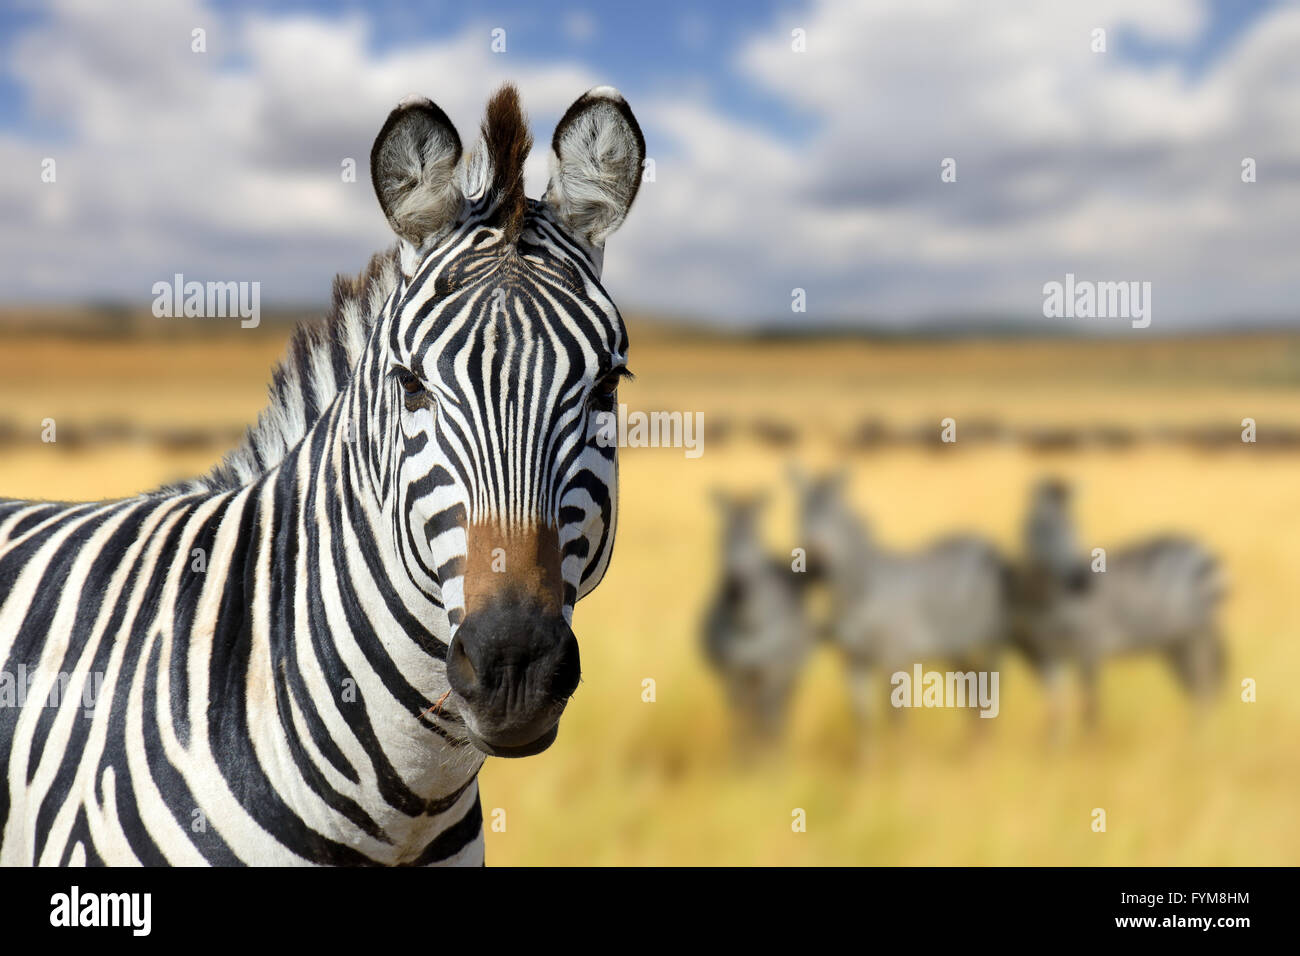 Zebra auf Grünland in Afrika, Nationalpark in Kenia Stockbild